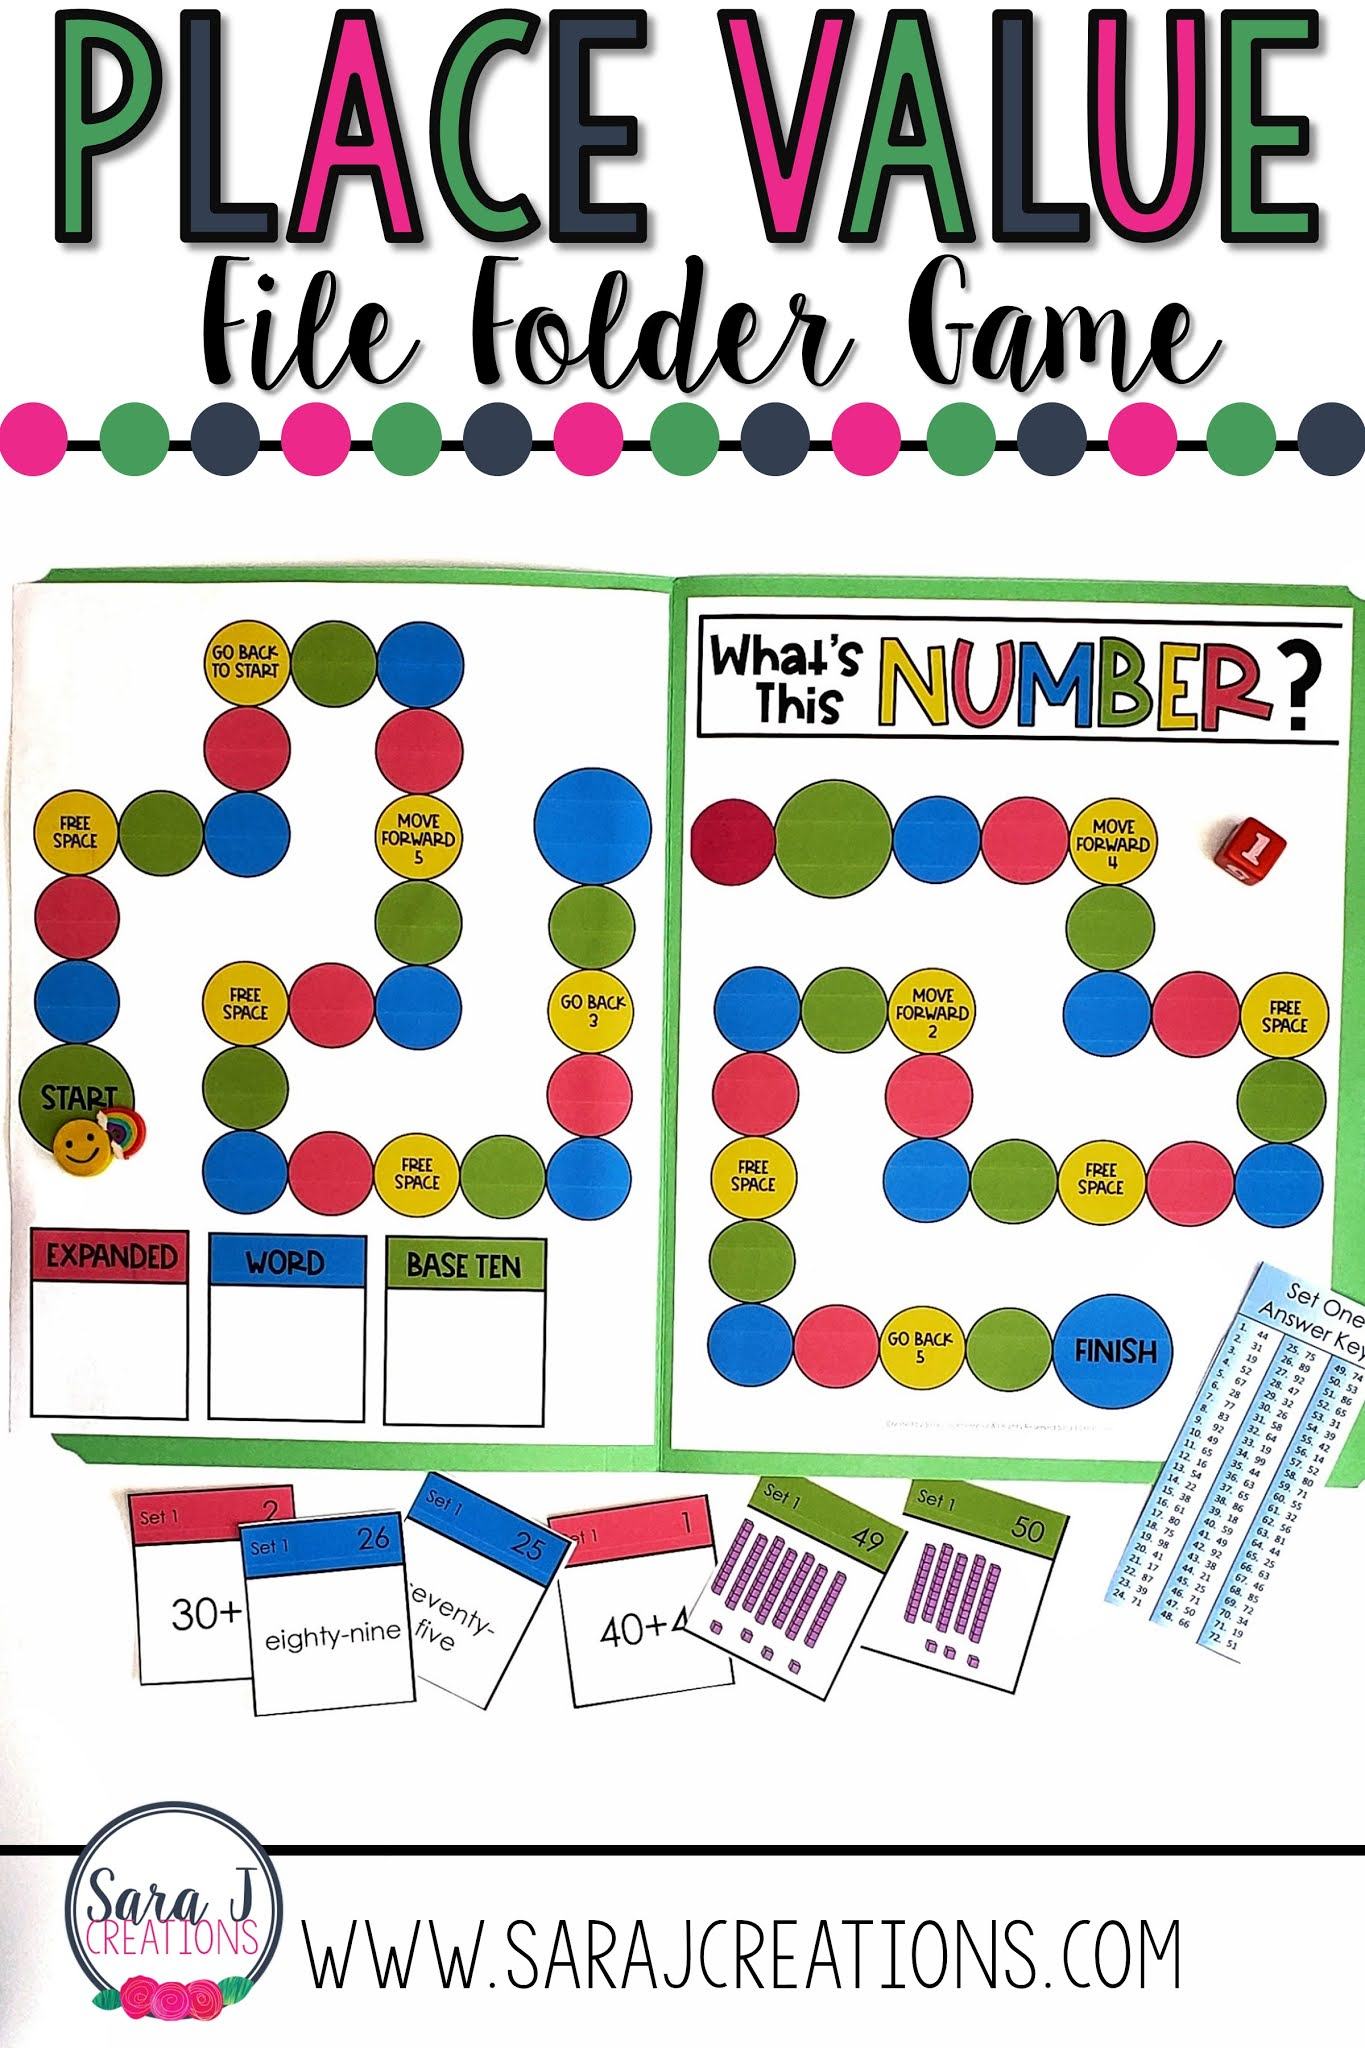 Place value file folder games are a low cost, easy to store way to make practicing place value more fun for your first or second graders.